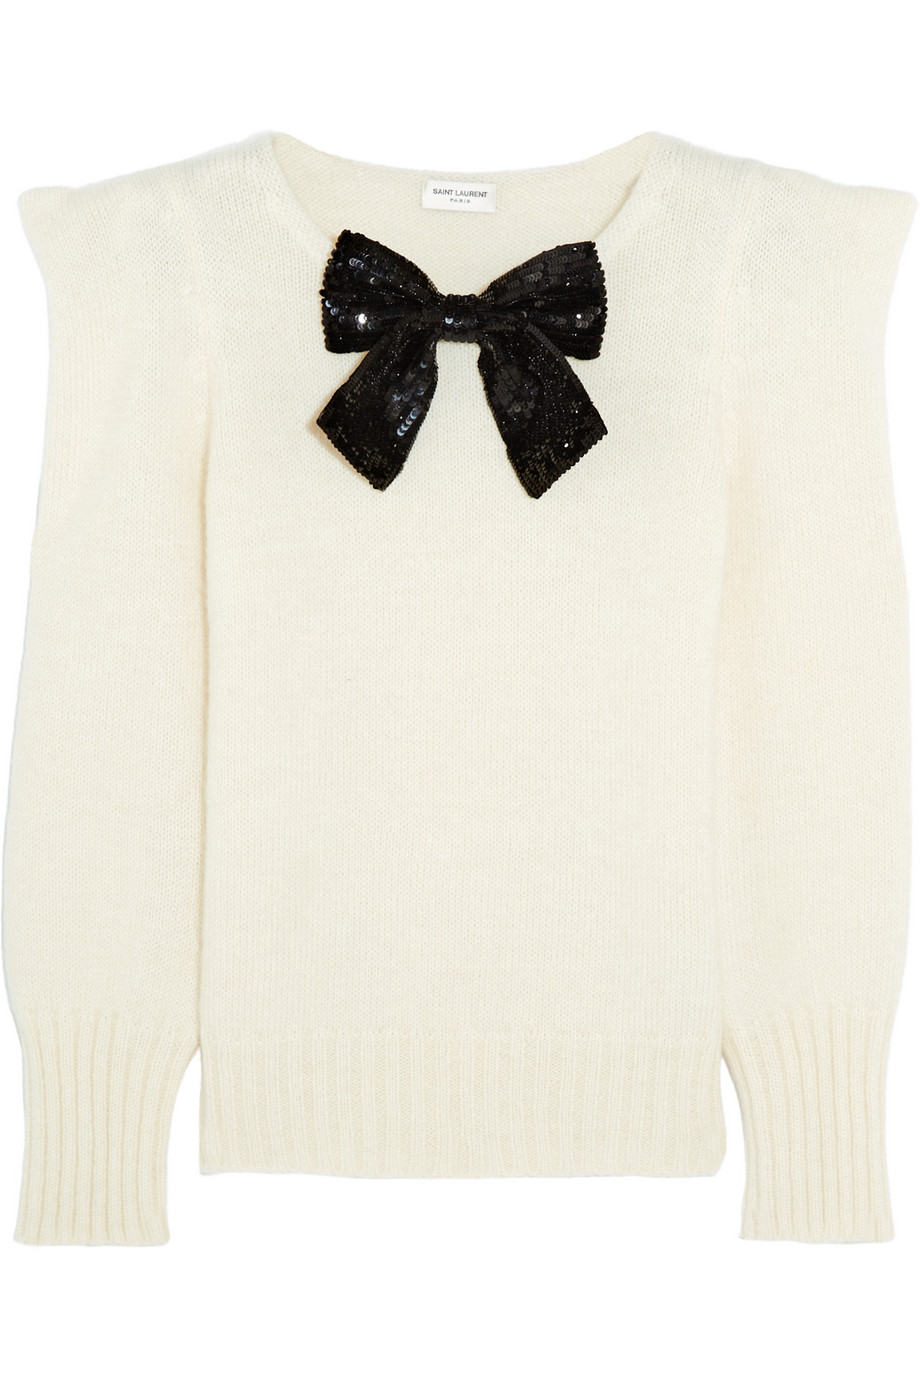 Saint Laurent Sequin Bow-Embellished Knitted Sweater, Ivory, Women's, Size: XL